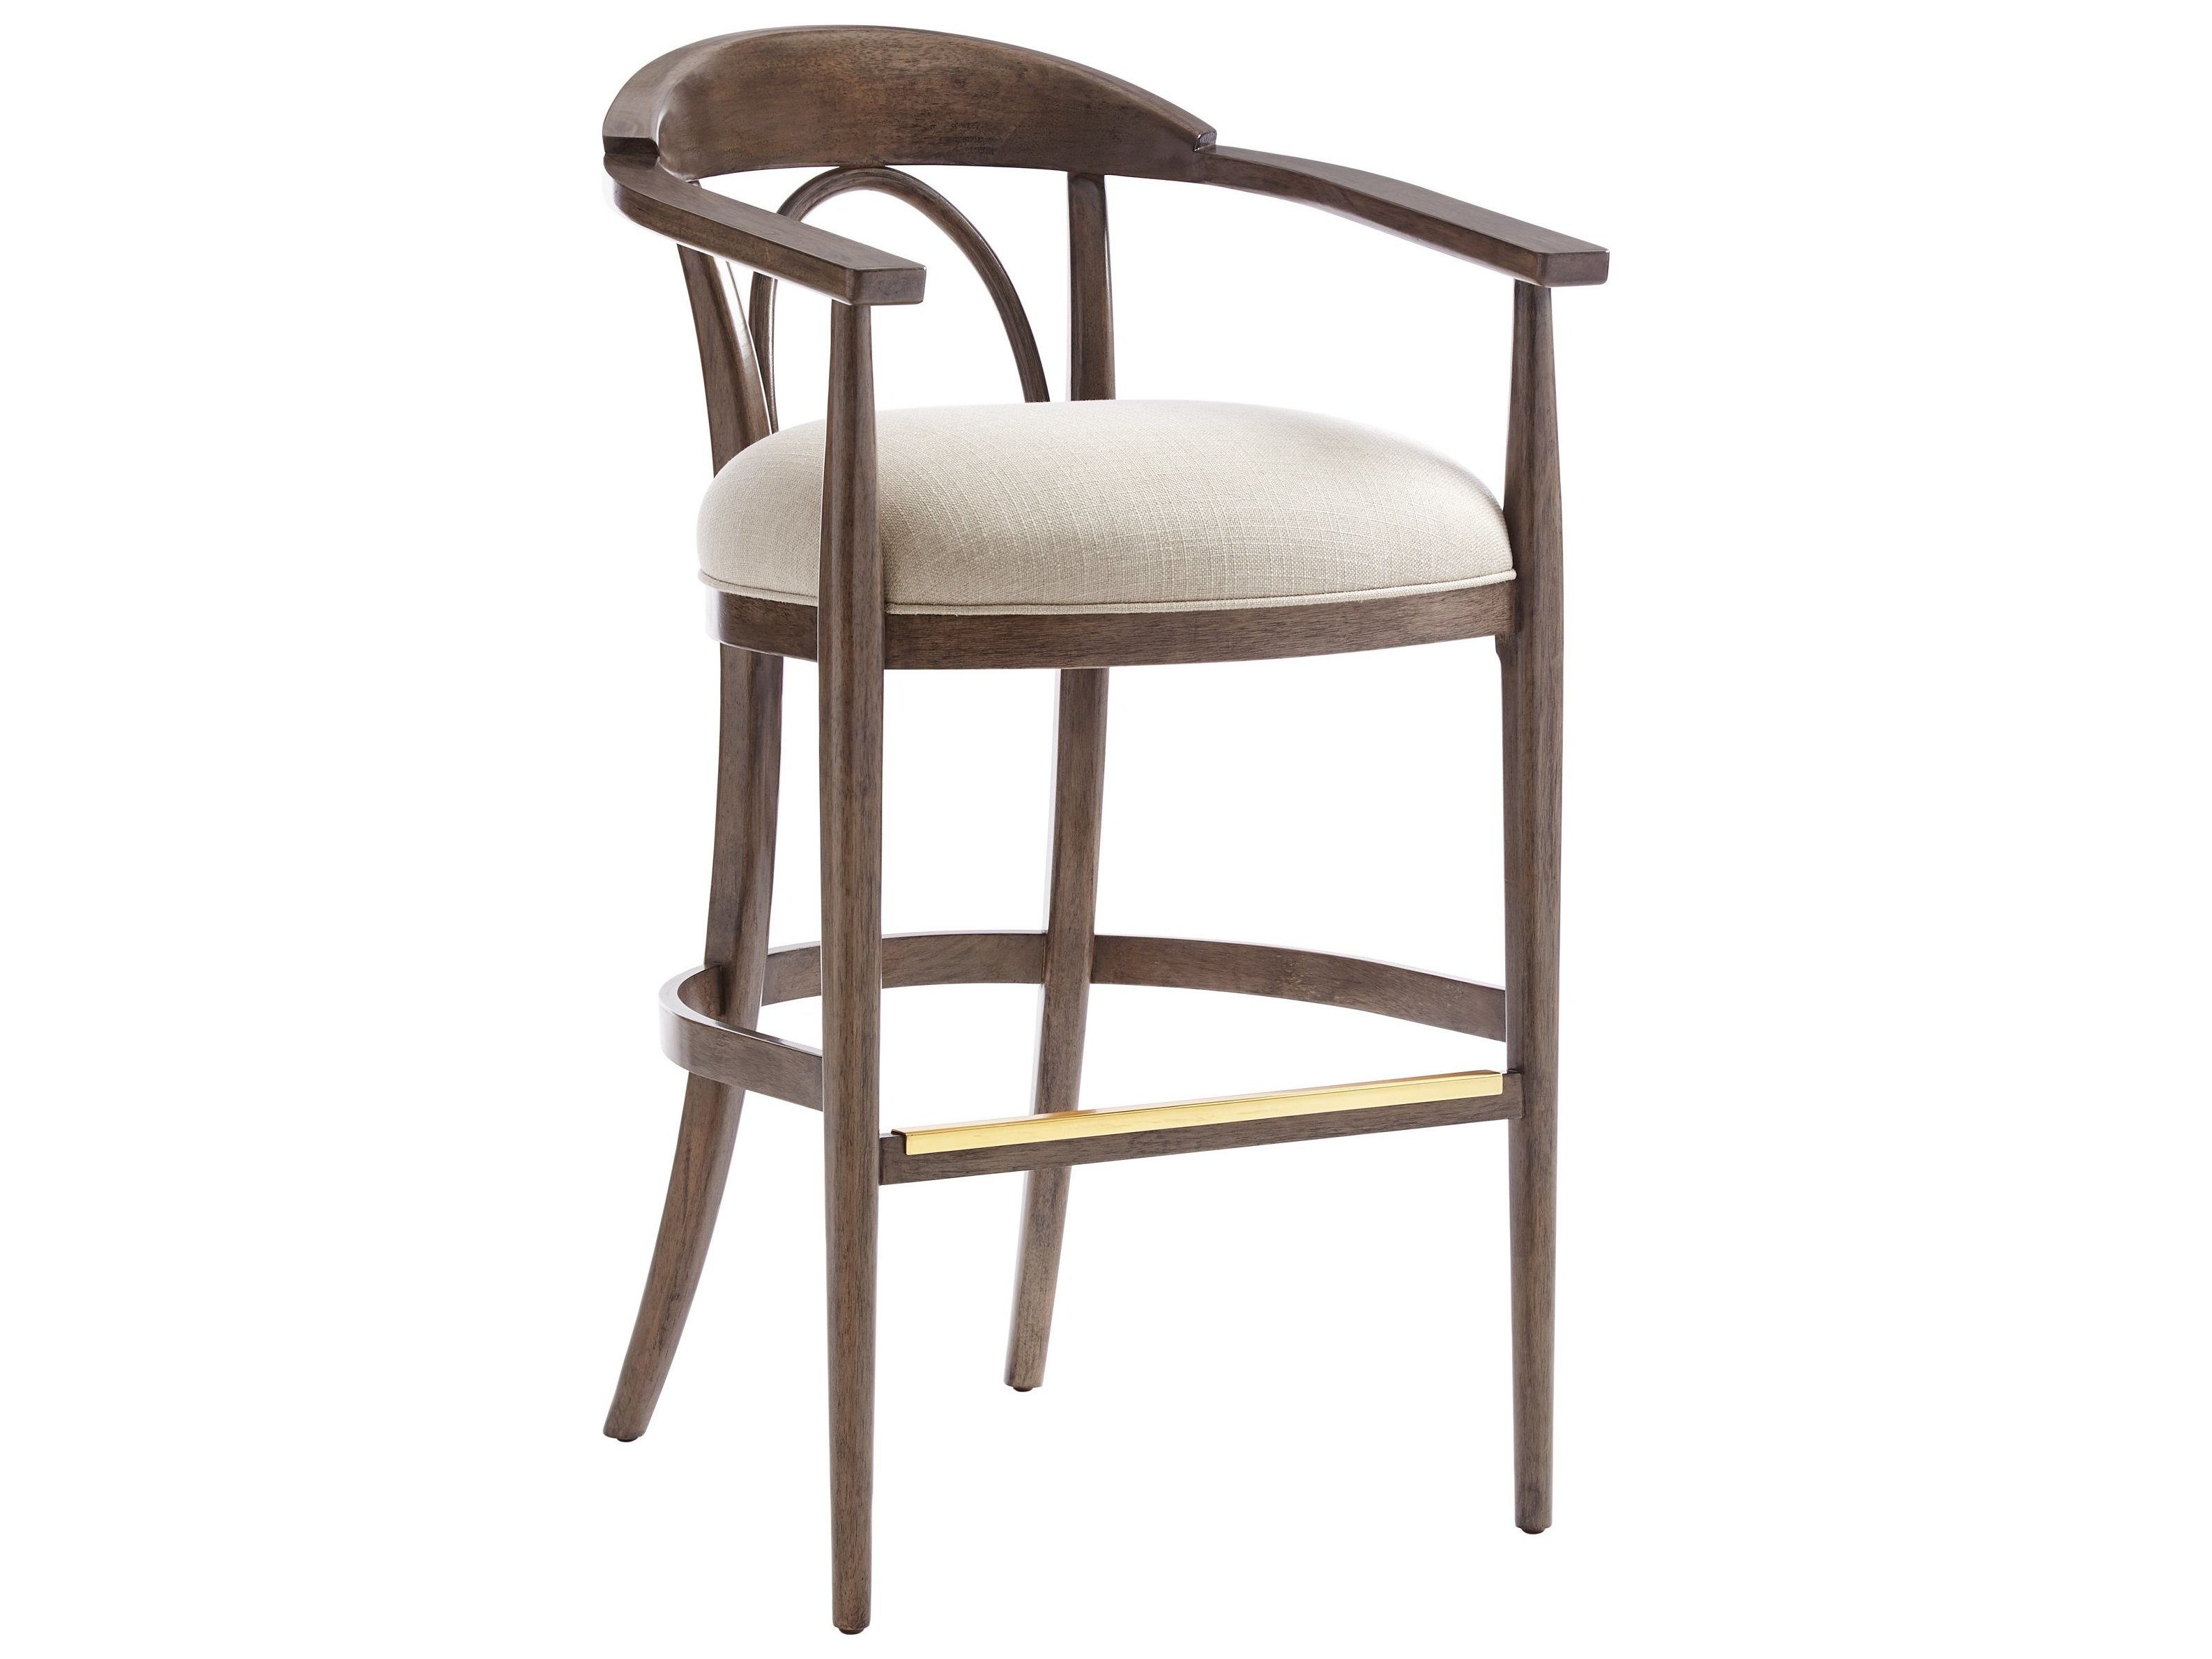 Stanley Furniture Panavista Quicksilver Studio Barstool